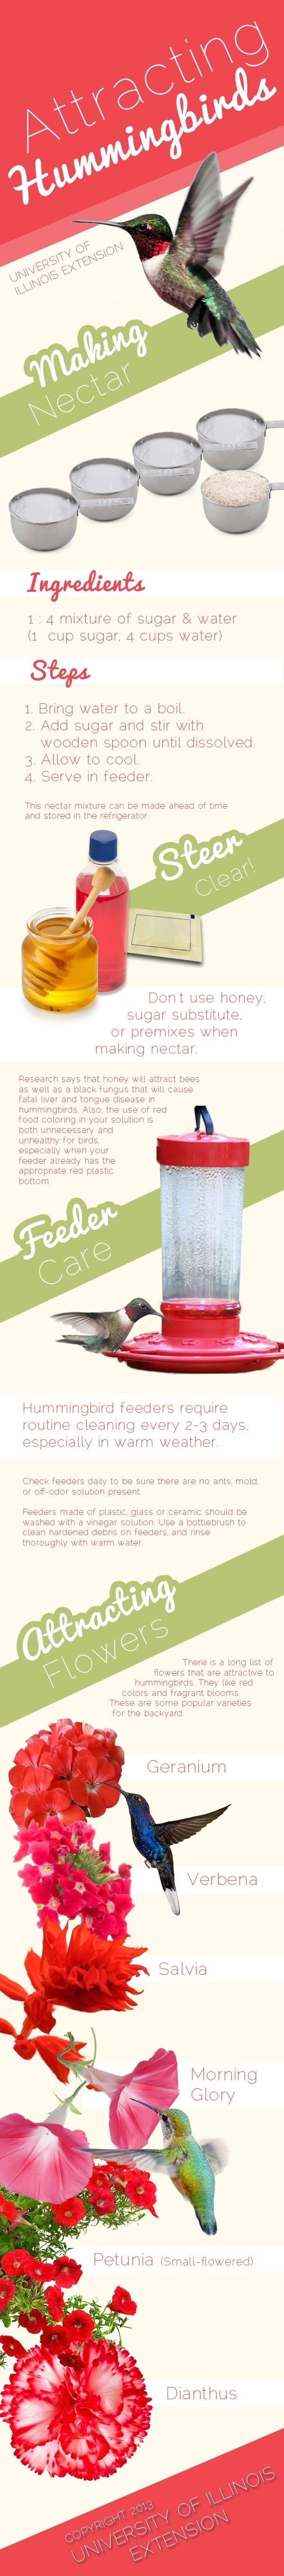 Learn some simple ways to attract hummingbirds to your garden. by cora